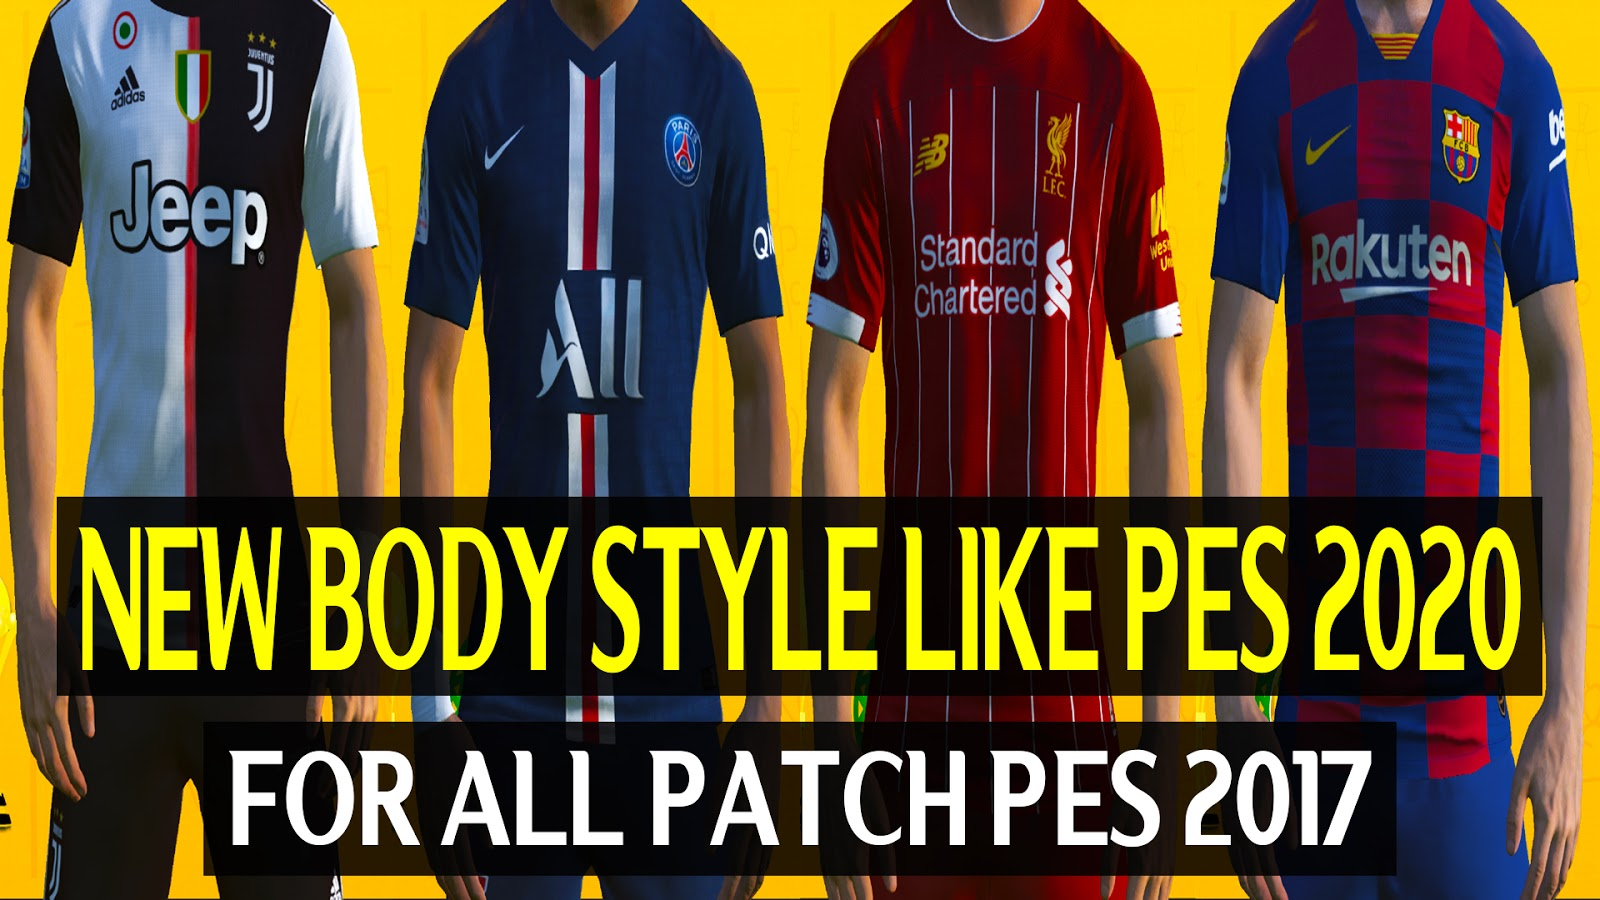 Best Mods 2020 PES2017 | BEST MOD BODY STYLE LIKE PES 2020   PES Patch | FIFA